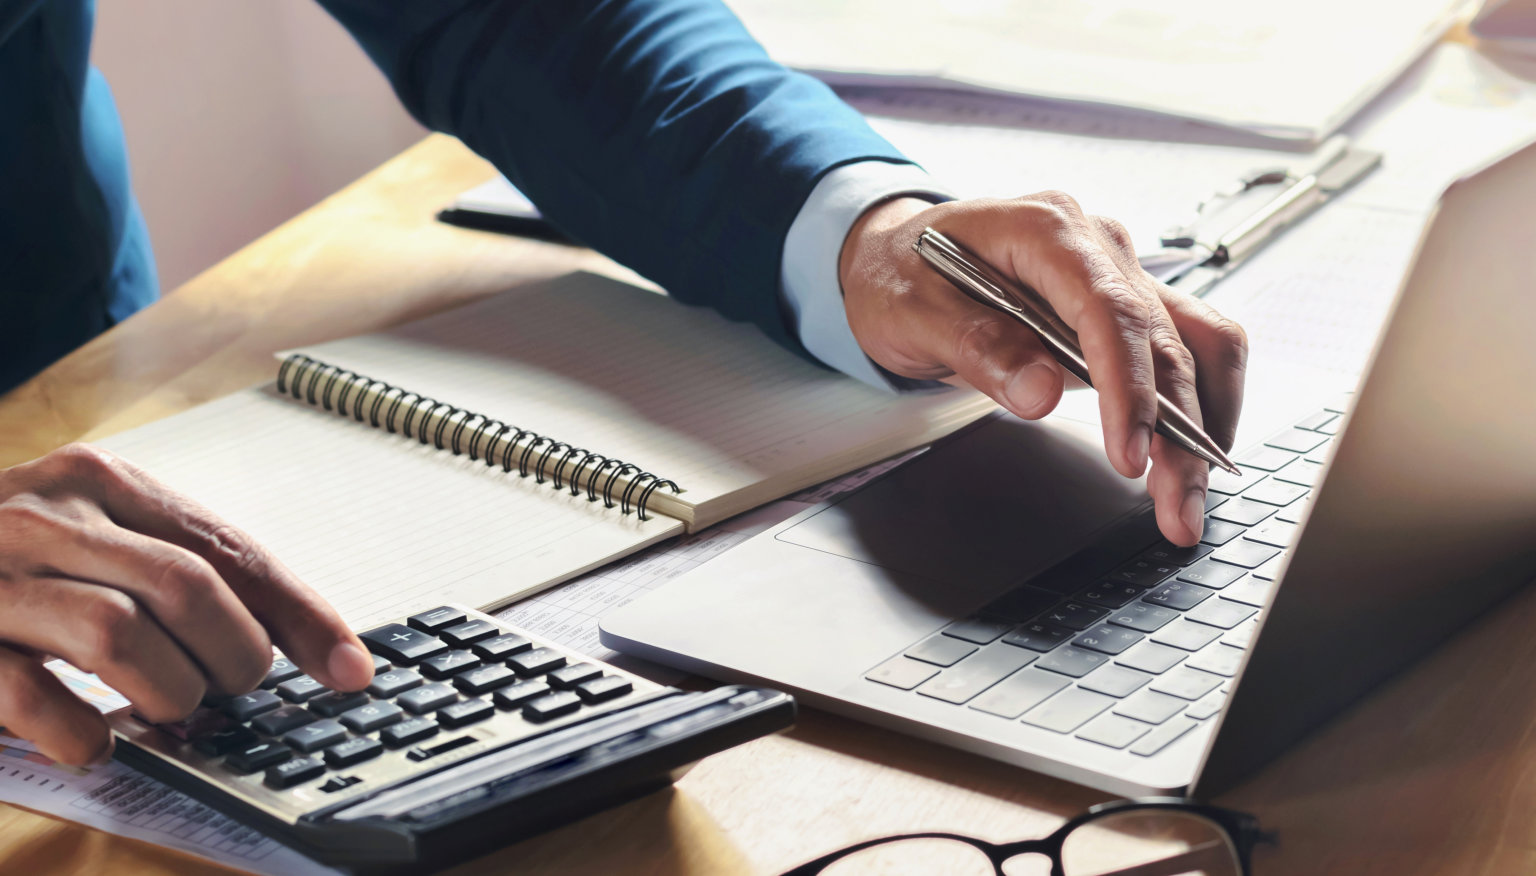 businessman working on desk with using calculator and computer i